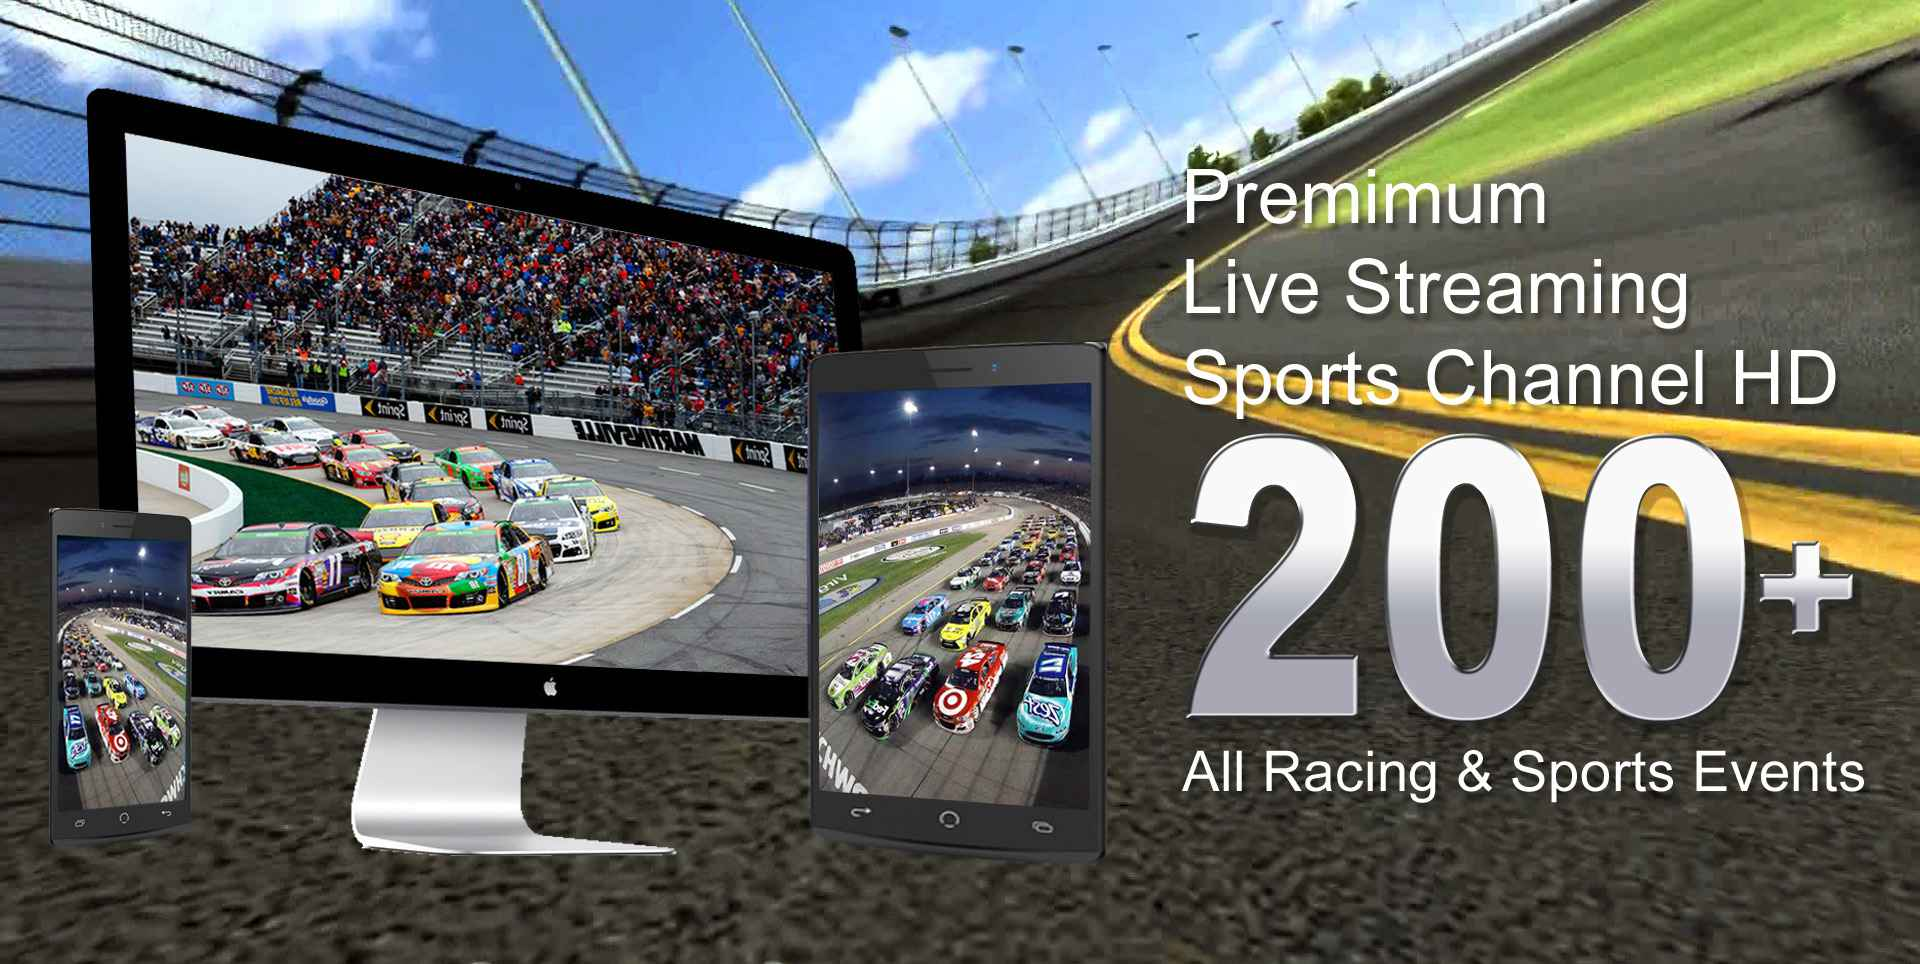 Nascar Pocono Race Streaming